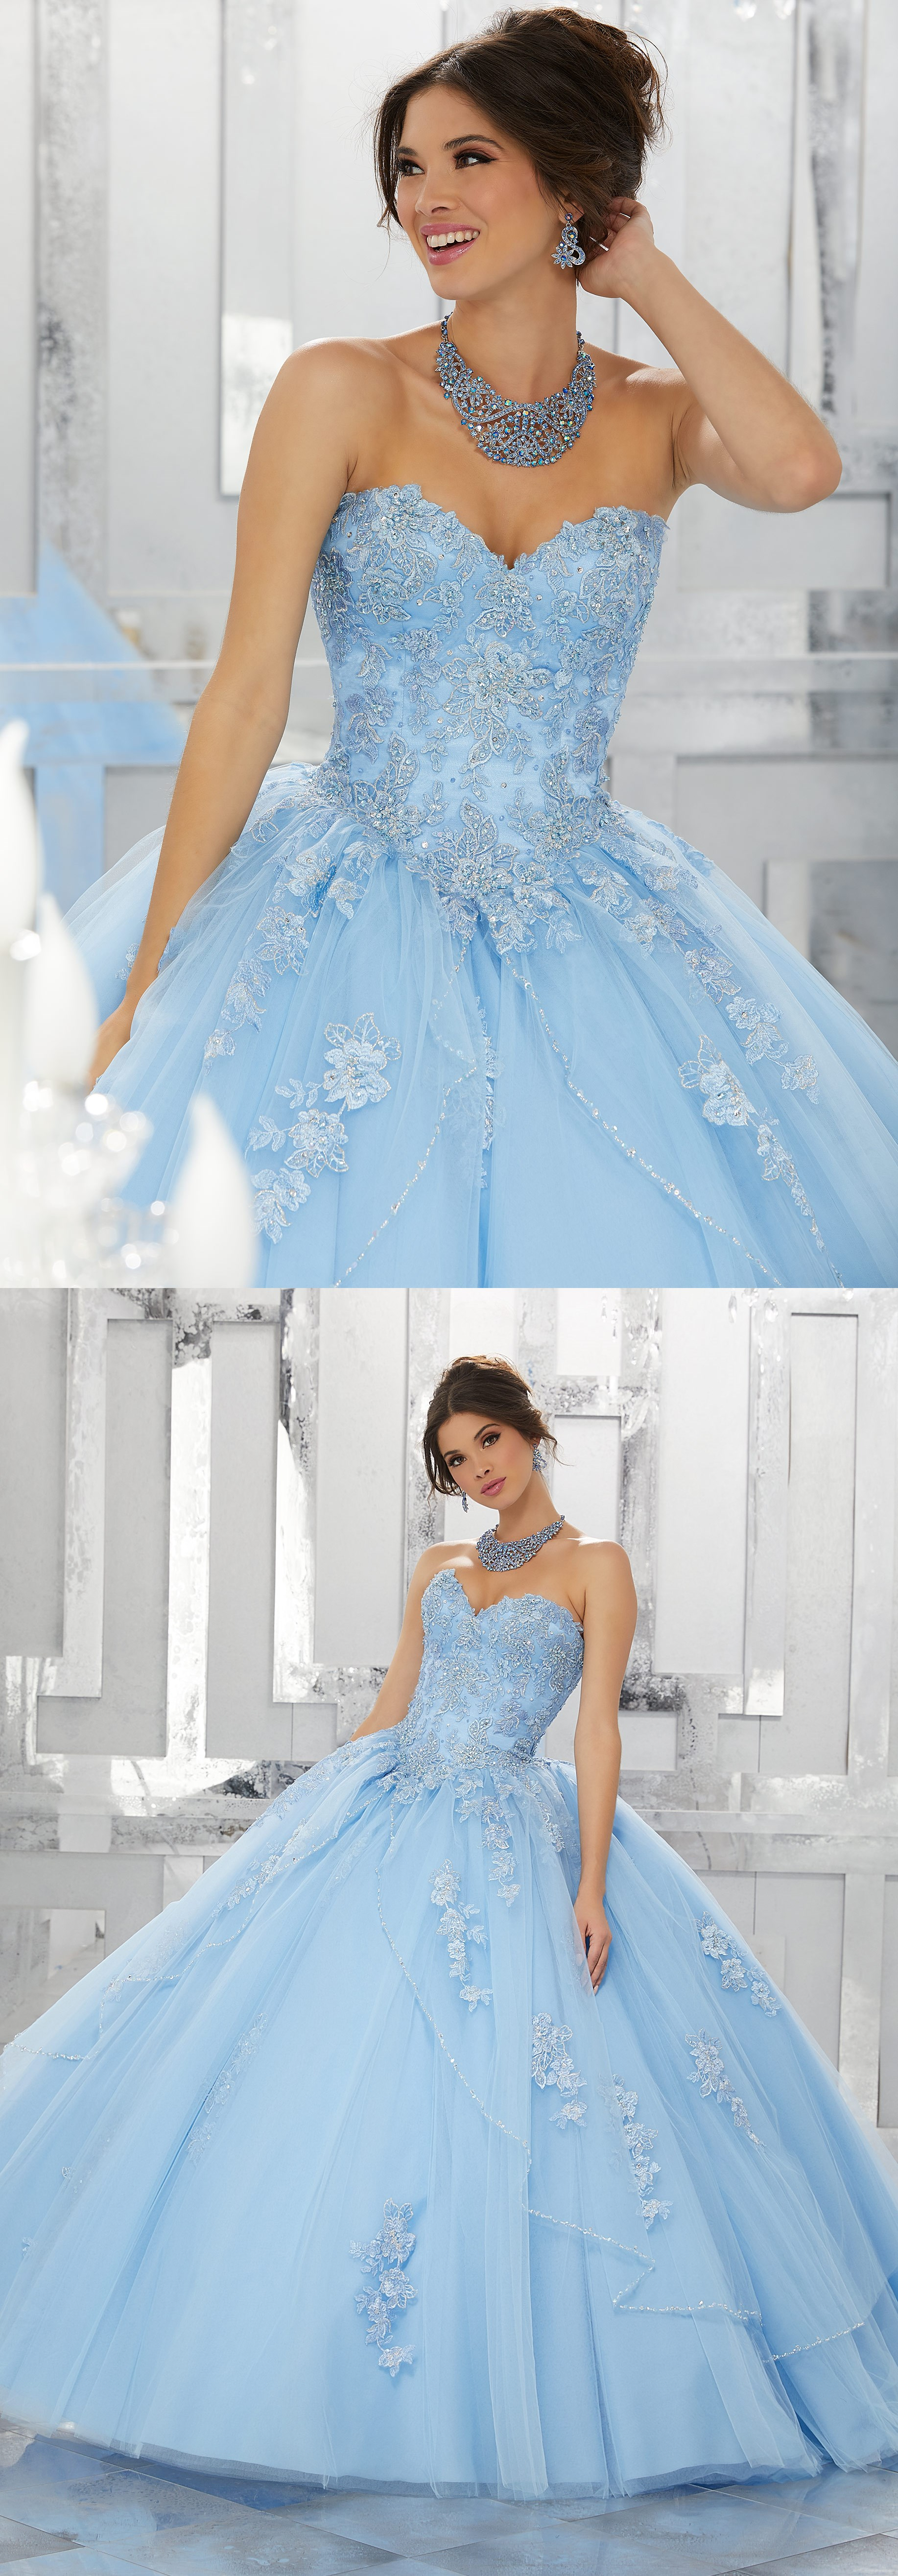 Elegant Light blue/yellow/pink appliques tulle ball gown, light blue ...